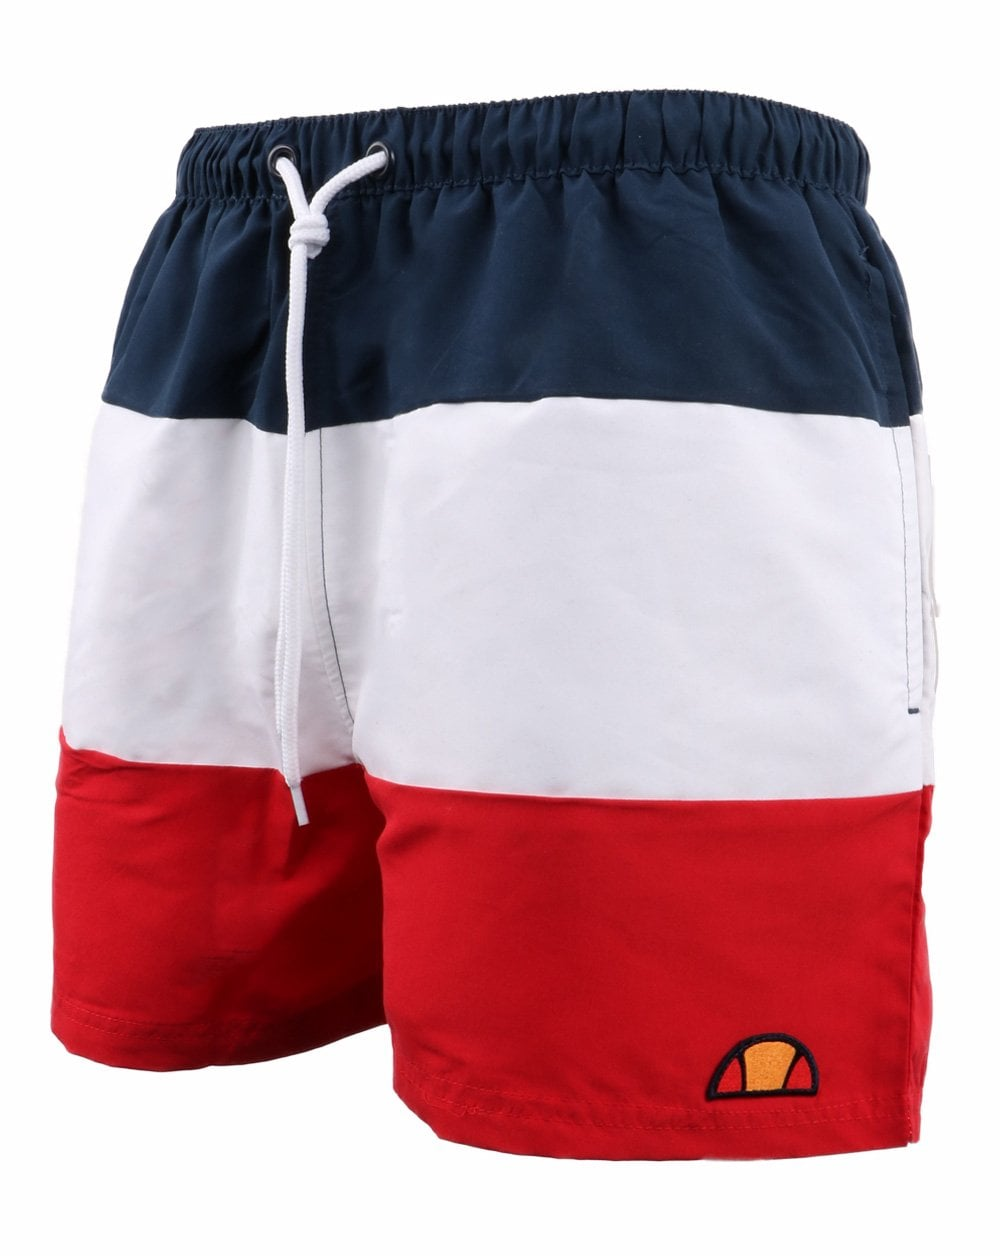 4601a6b91d Ellesse Cielo Swim Shorts in Red White and Navy / 80s Casual Classics